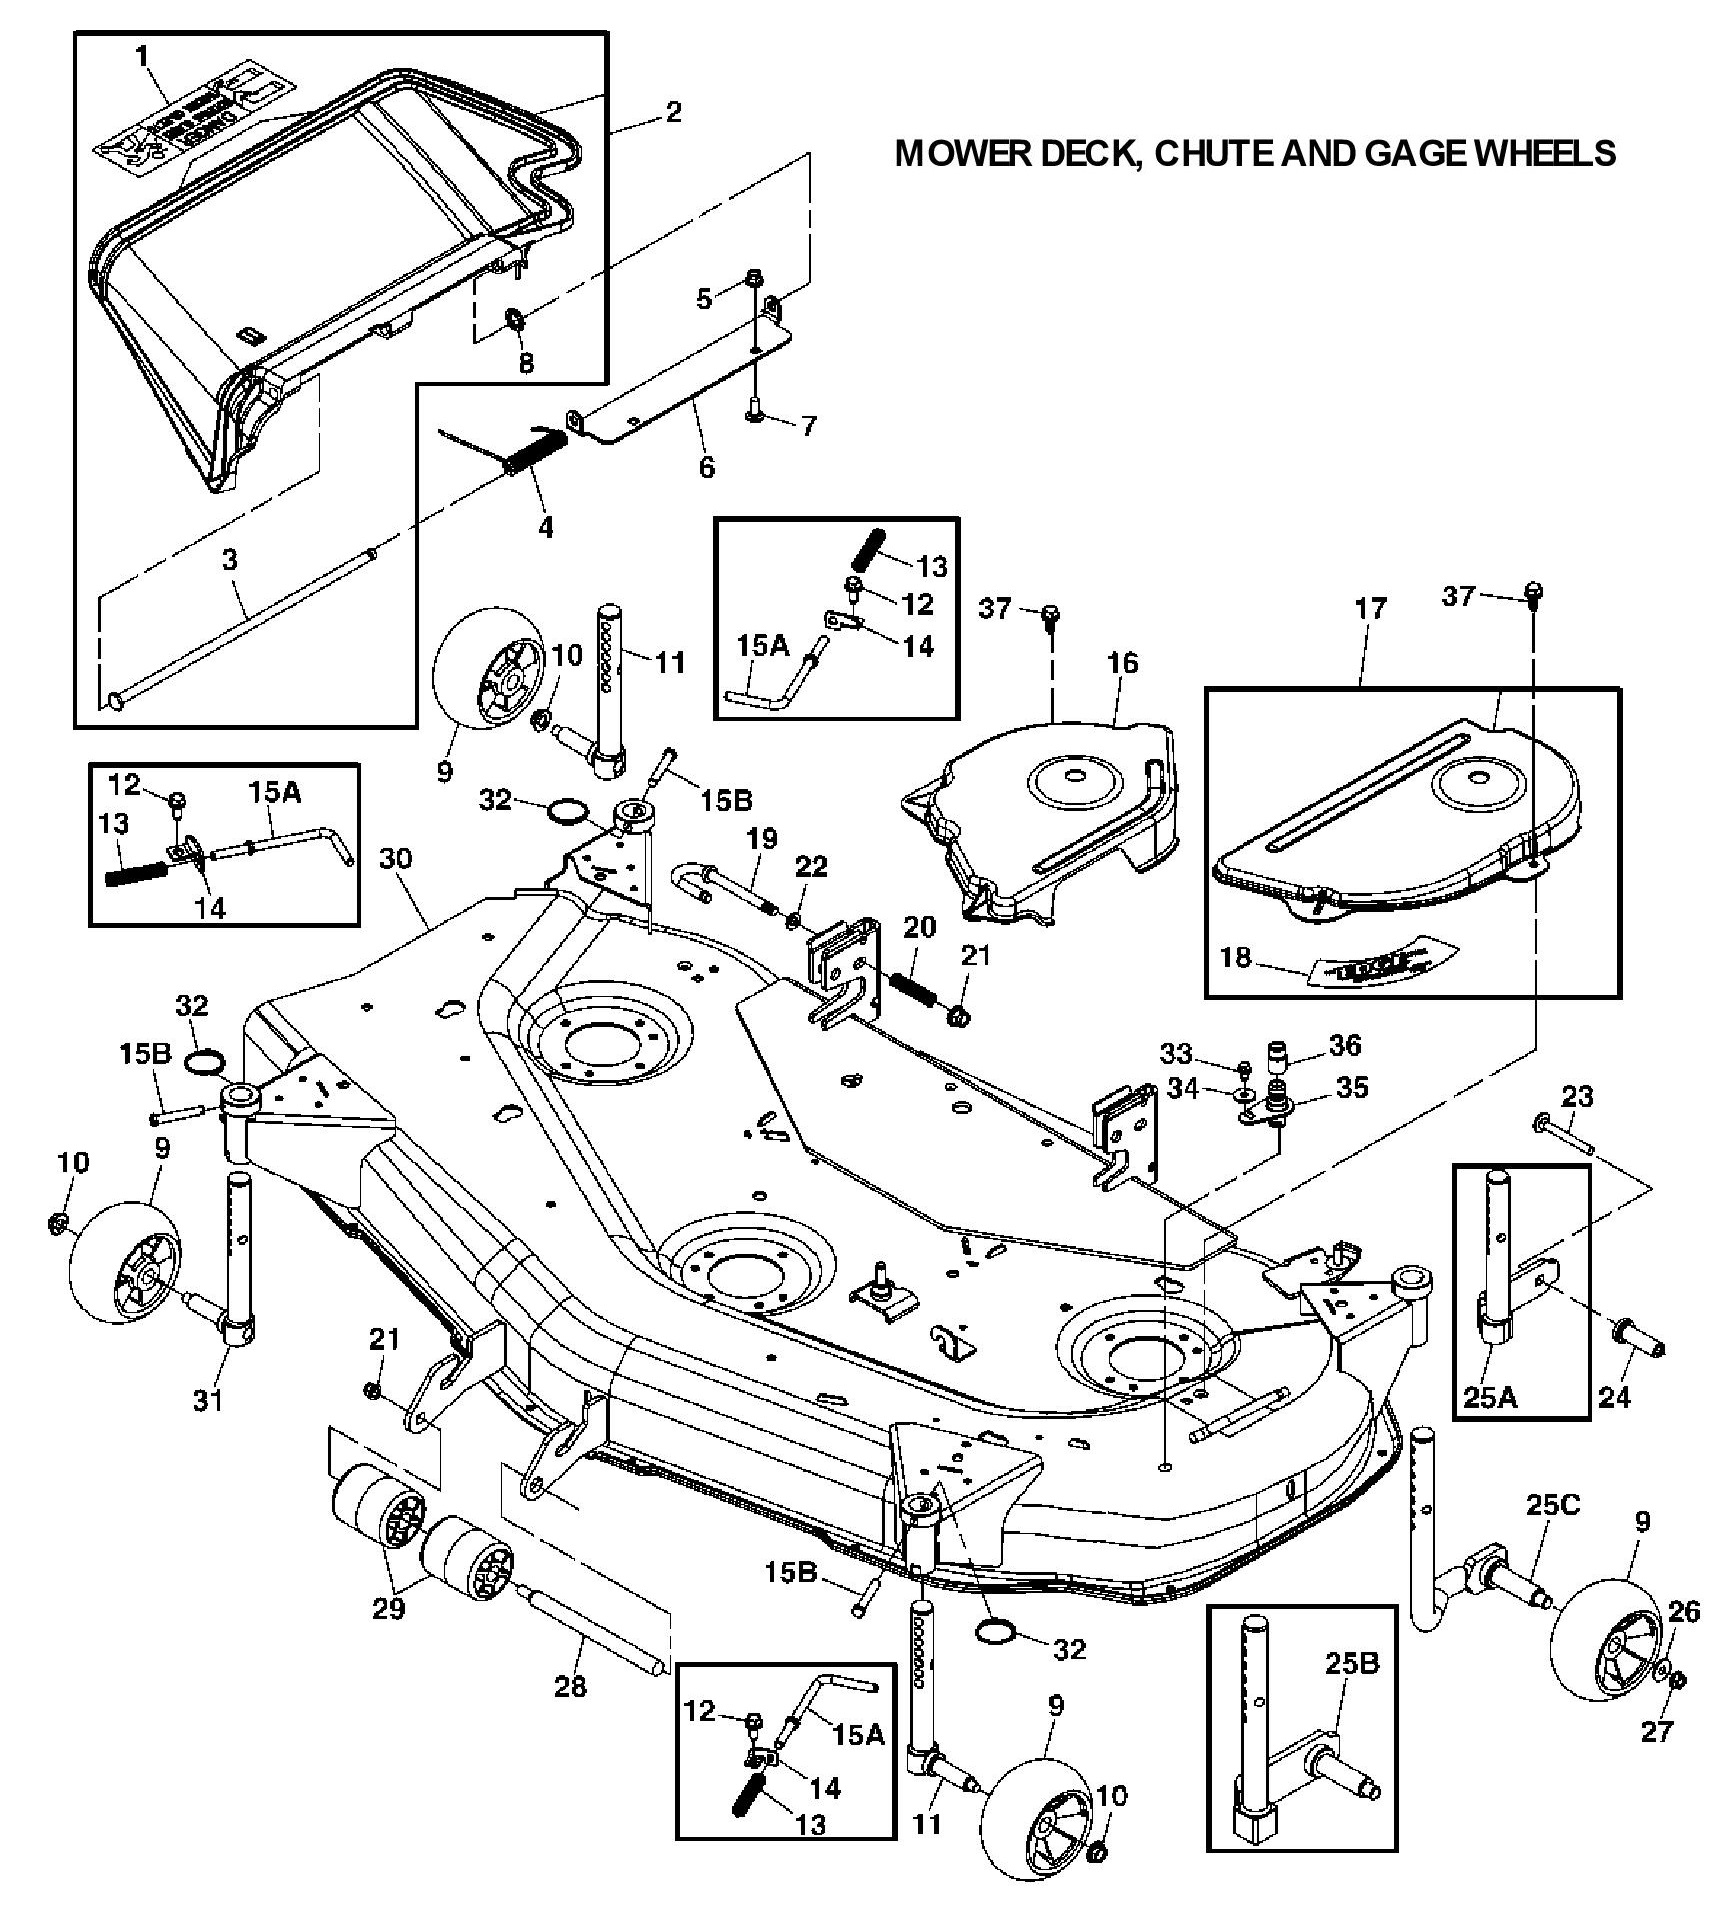 John Deere X320 Deck Parts Diagram